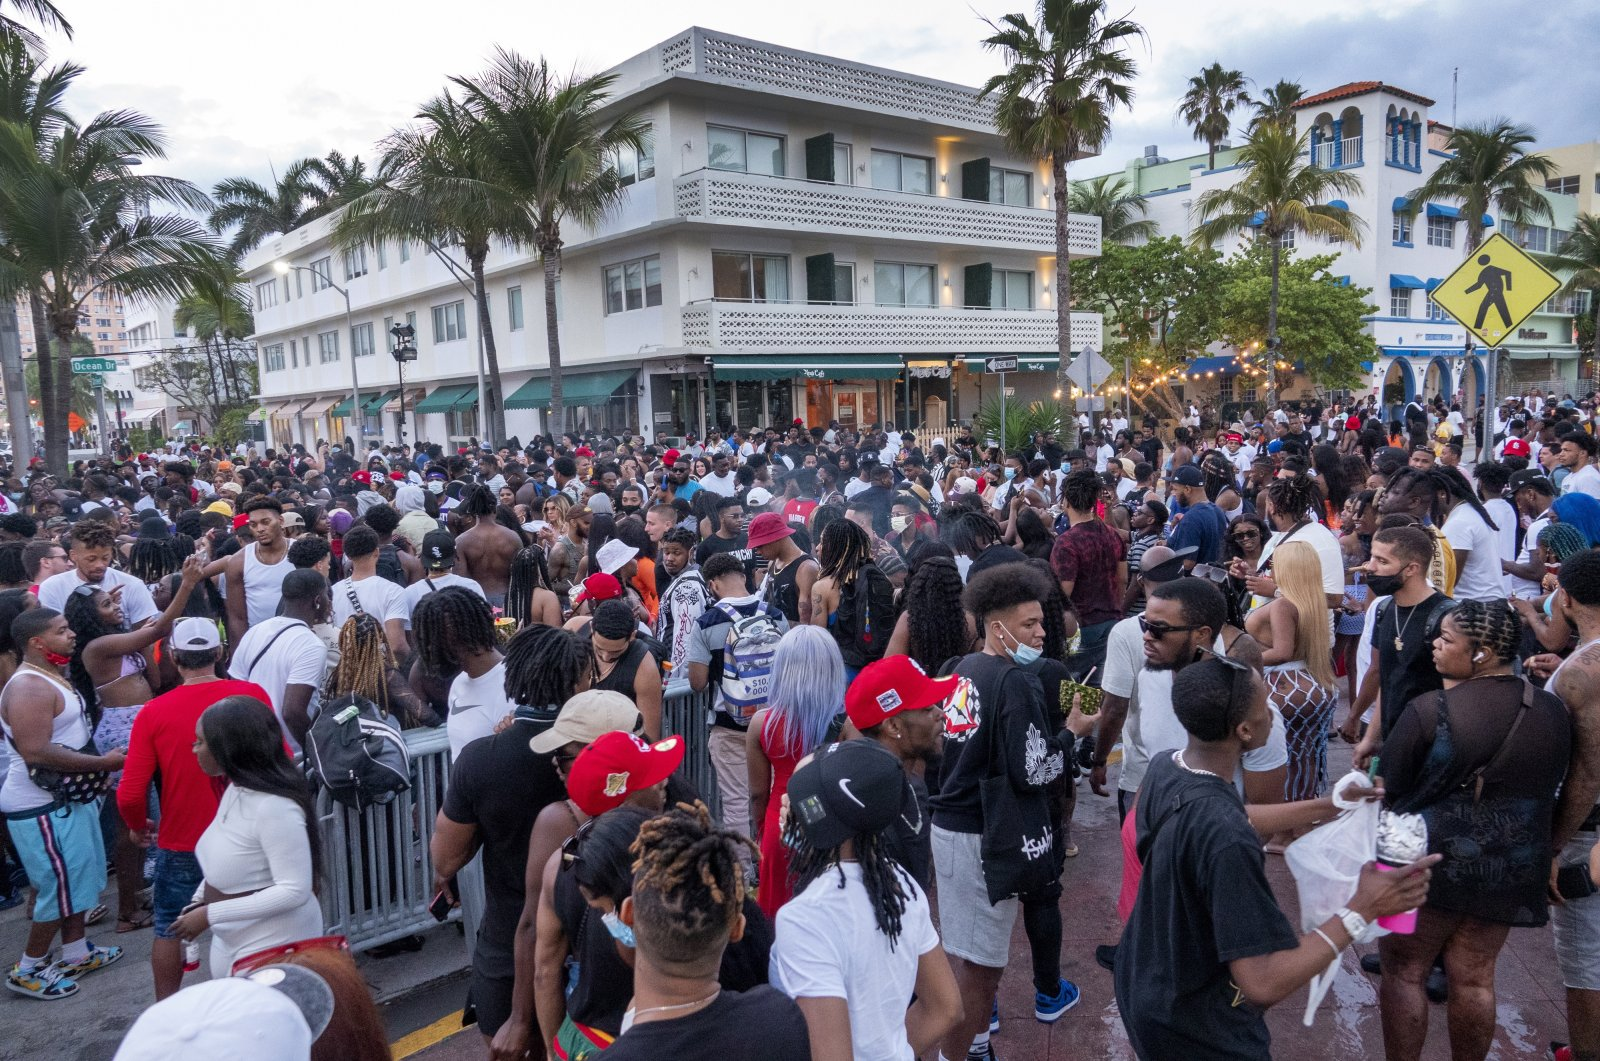 A large crowd of people participate in a party on a walkway near the beach, during spring break in Miami Beach, Fla., U.S., March 20, 2021. (EPA Photo)